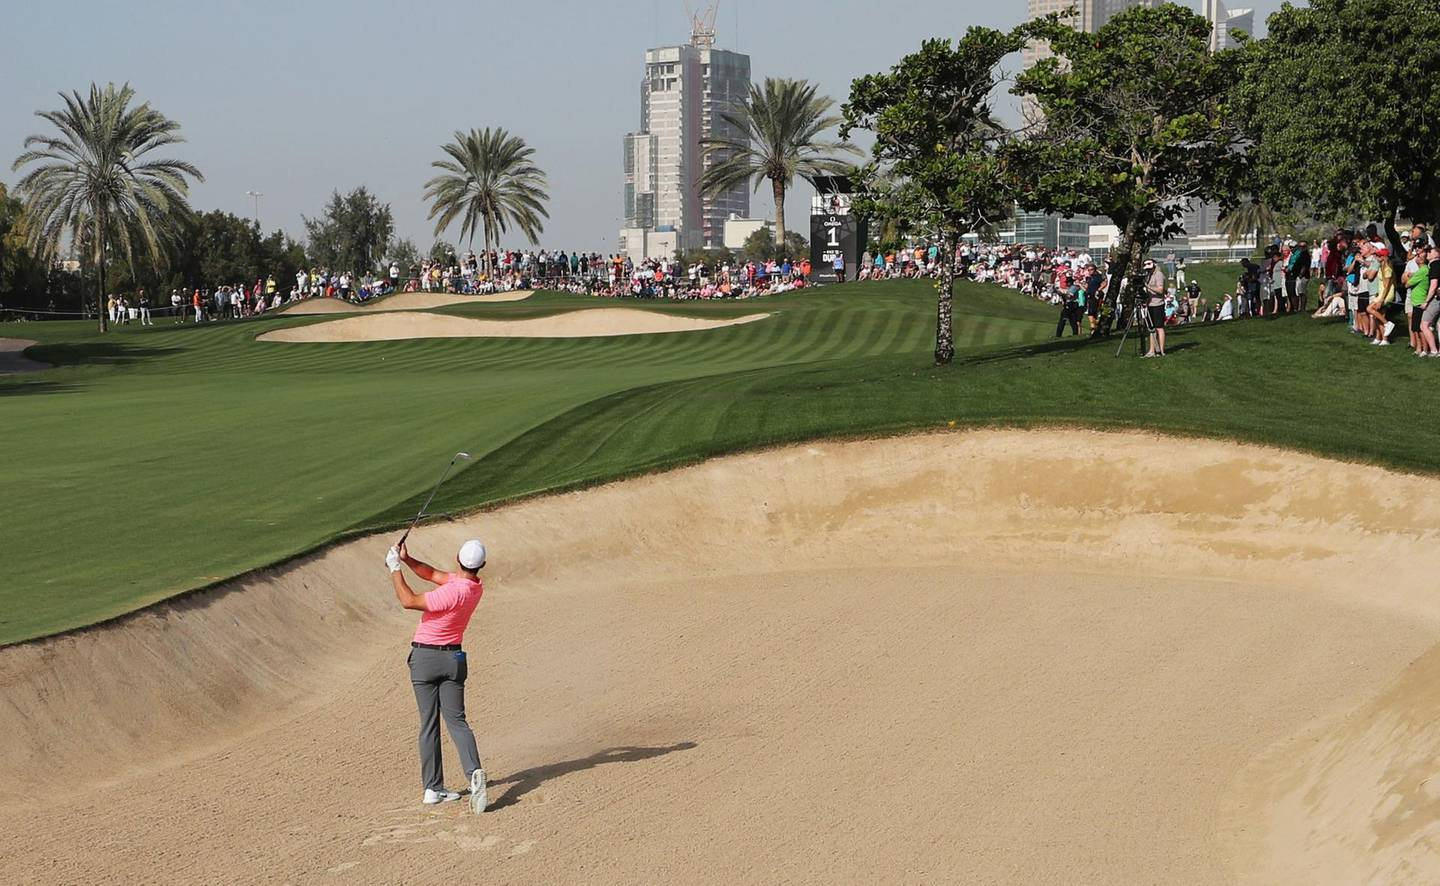 Rory McIlroy of Northern Ireland plays a shot during the round two of the Dubai Desert Classic at Emirates Golf Club on January 26, 2018, in Dubai. / AFP PHOTO / KARIM SAHIB